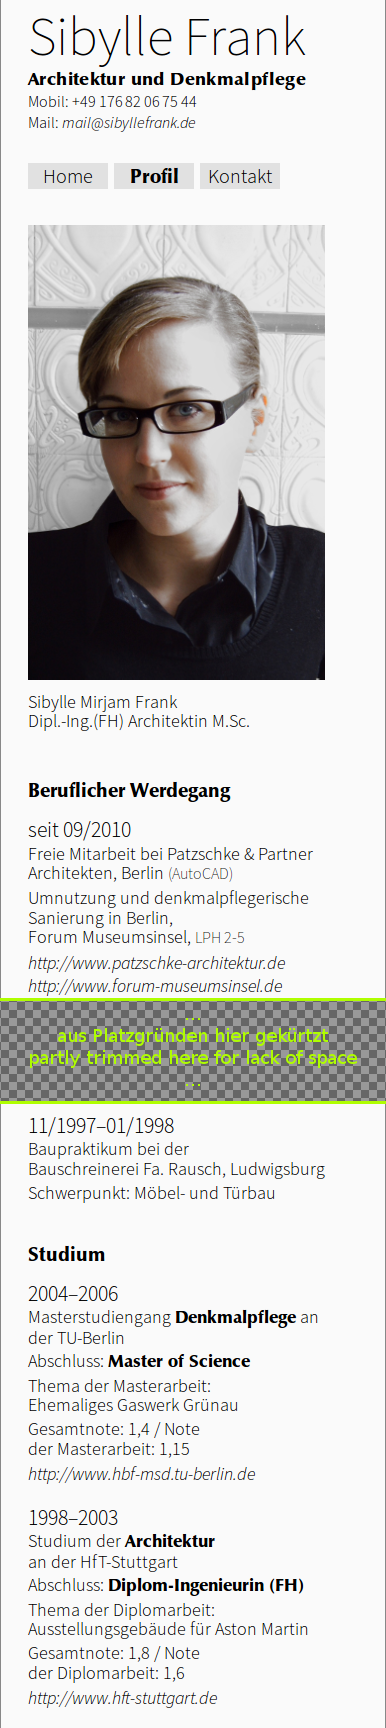 Small view of the website of Sibylle Frank